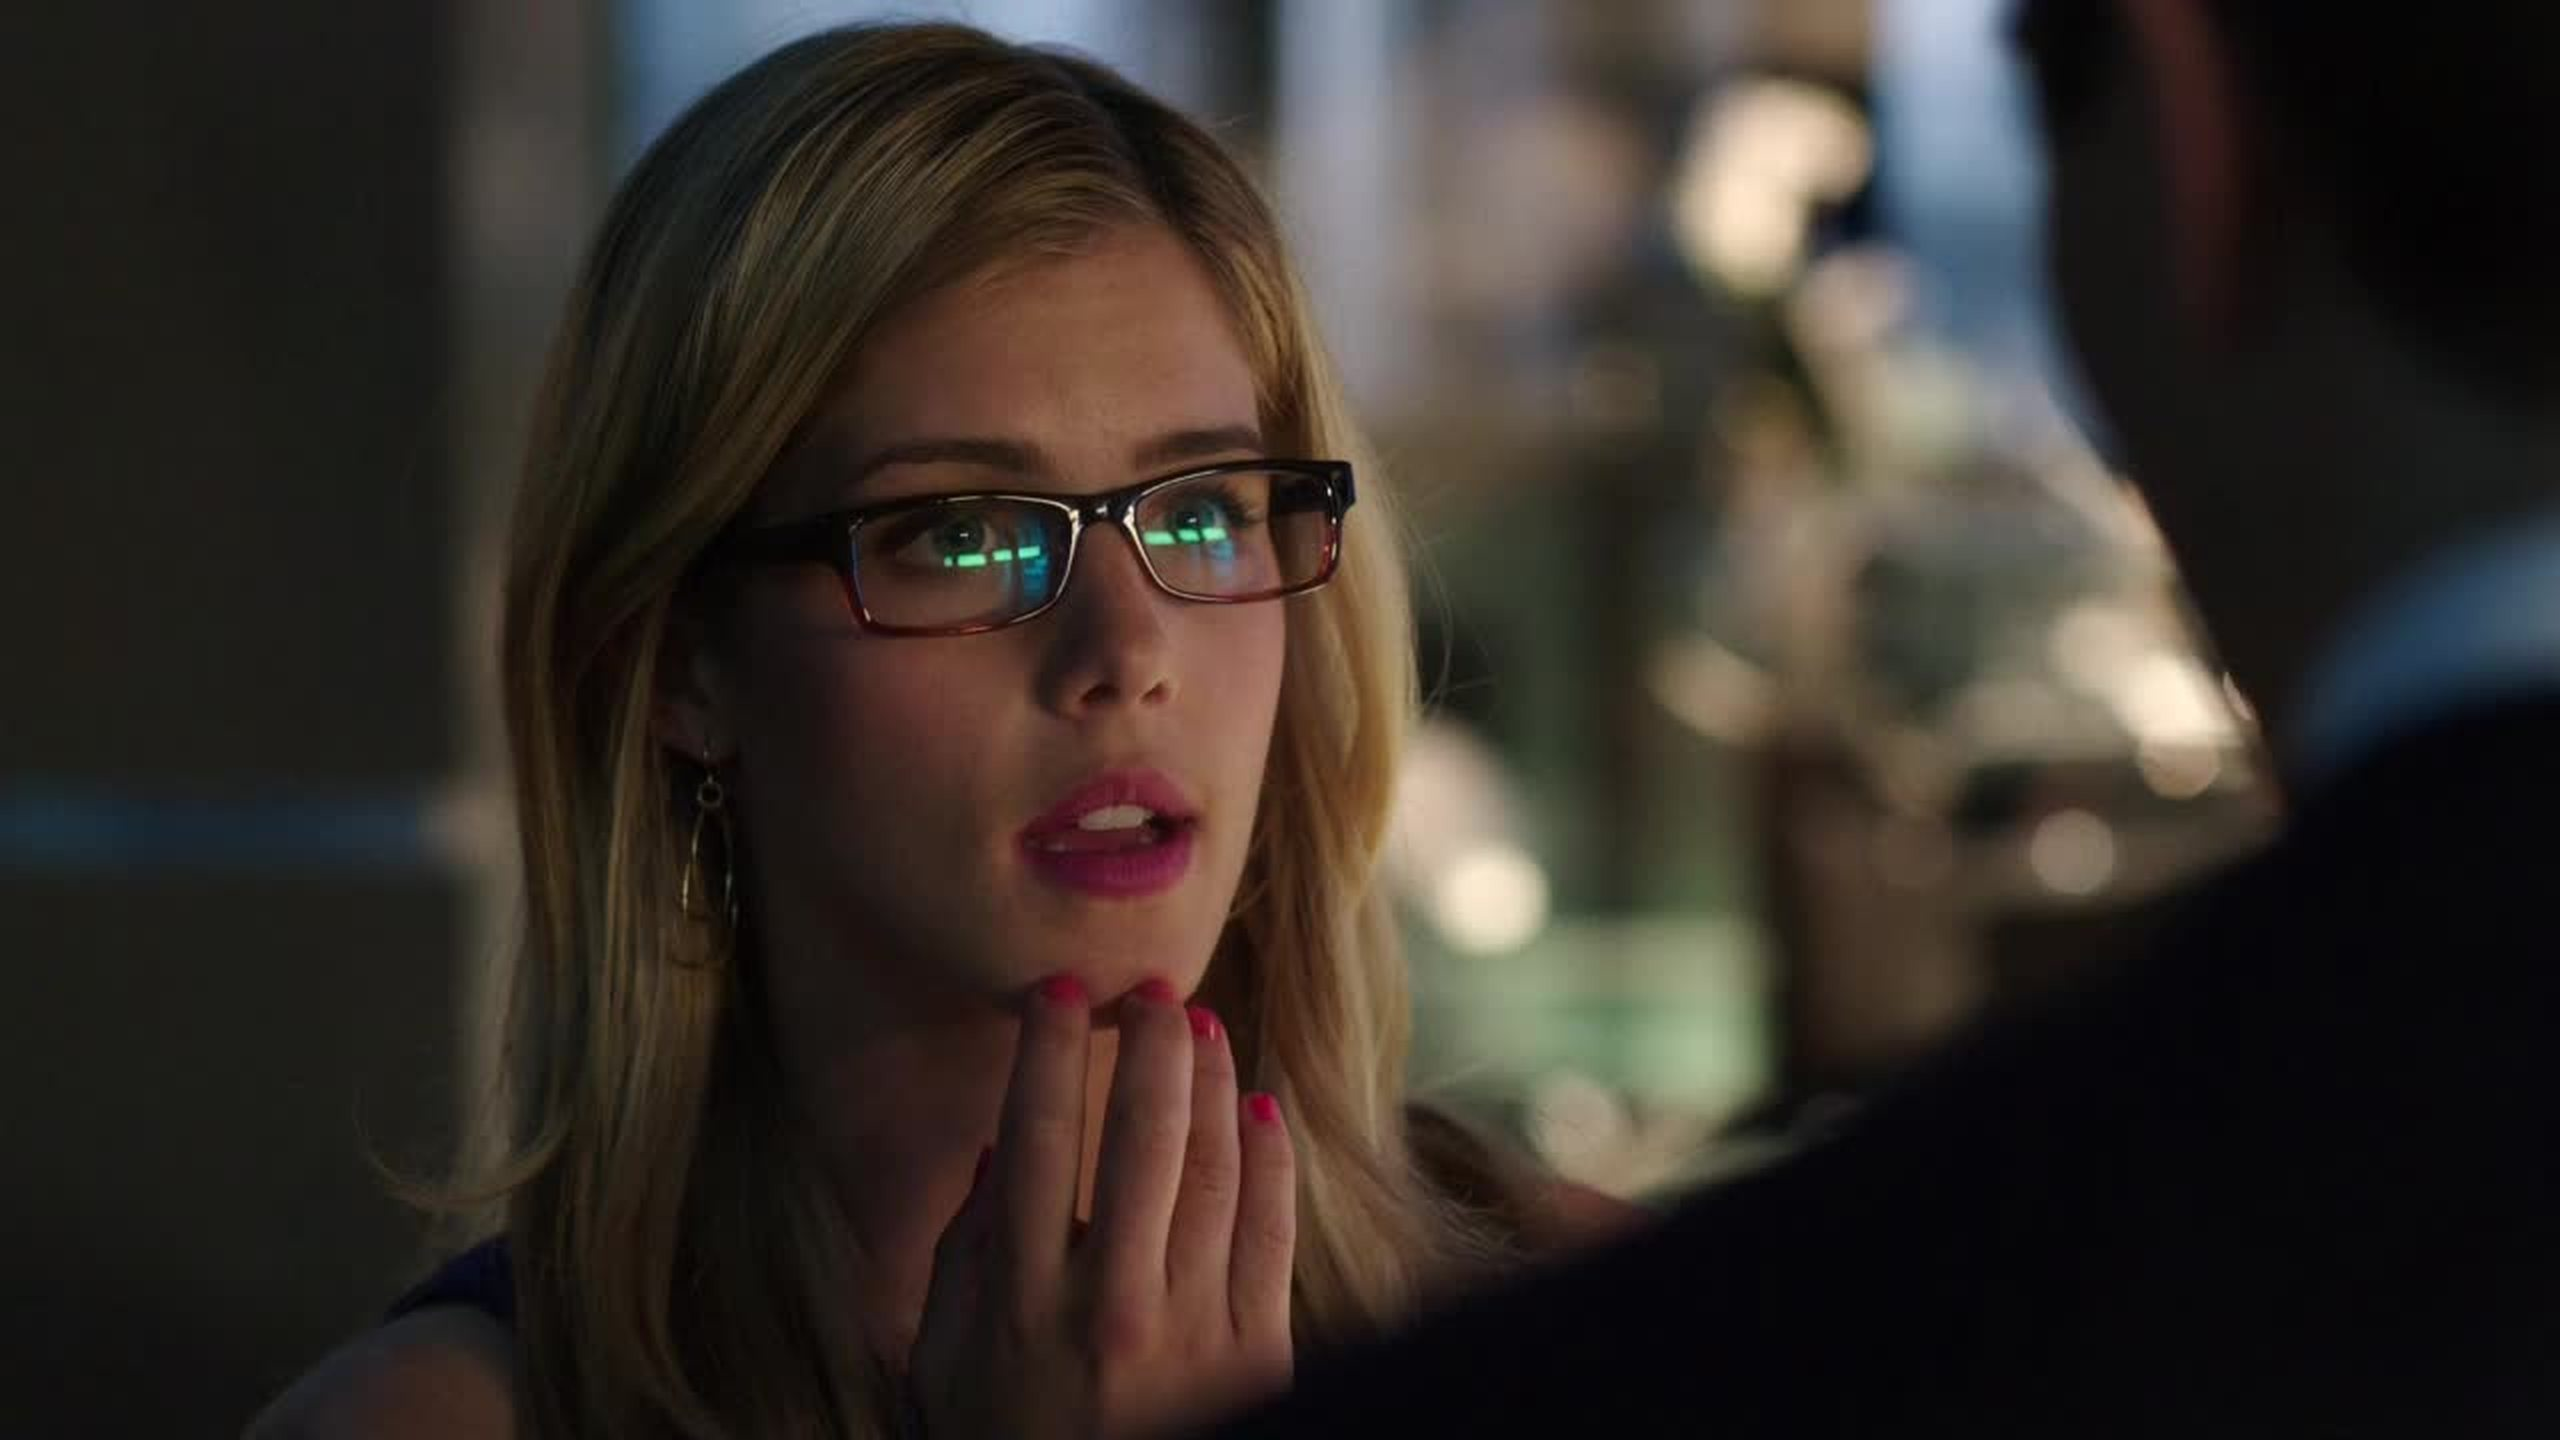 There's going to be Felicity flashbacks in episode 5! I can't wait to see her past!!